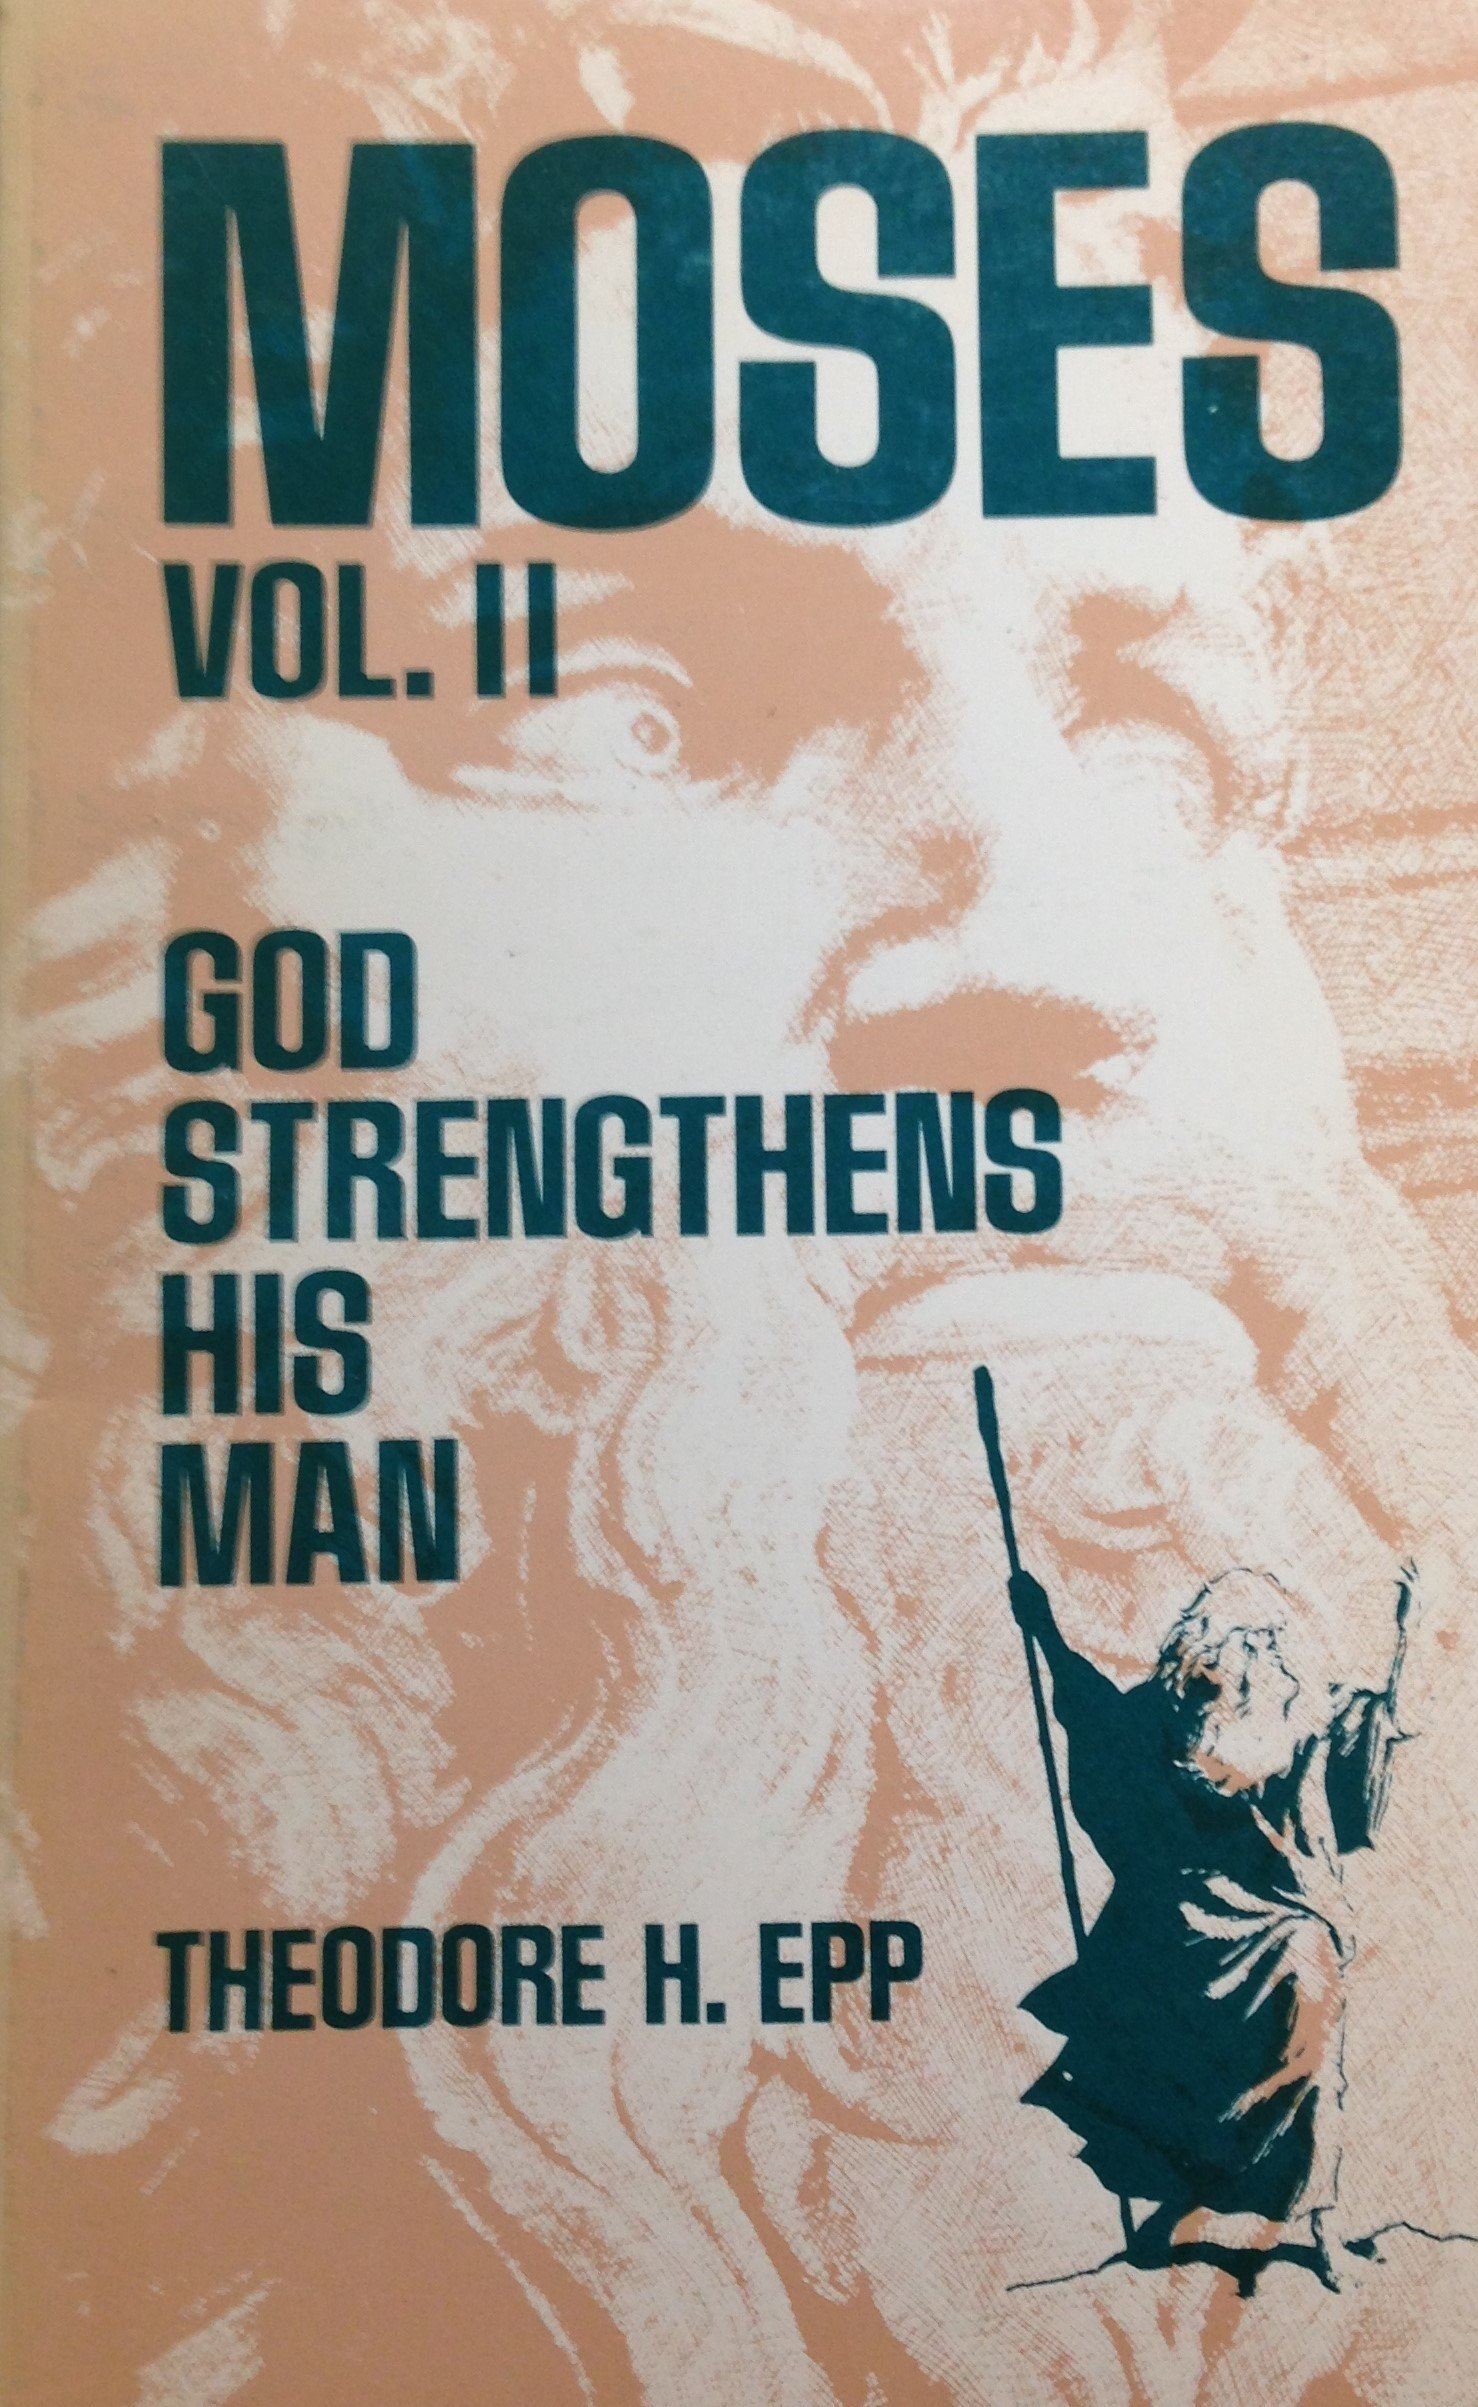 Moses Volume II:  God Strengthens His Man by Theodore H. Epp (USED) 00082